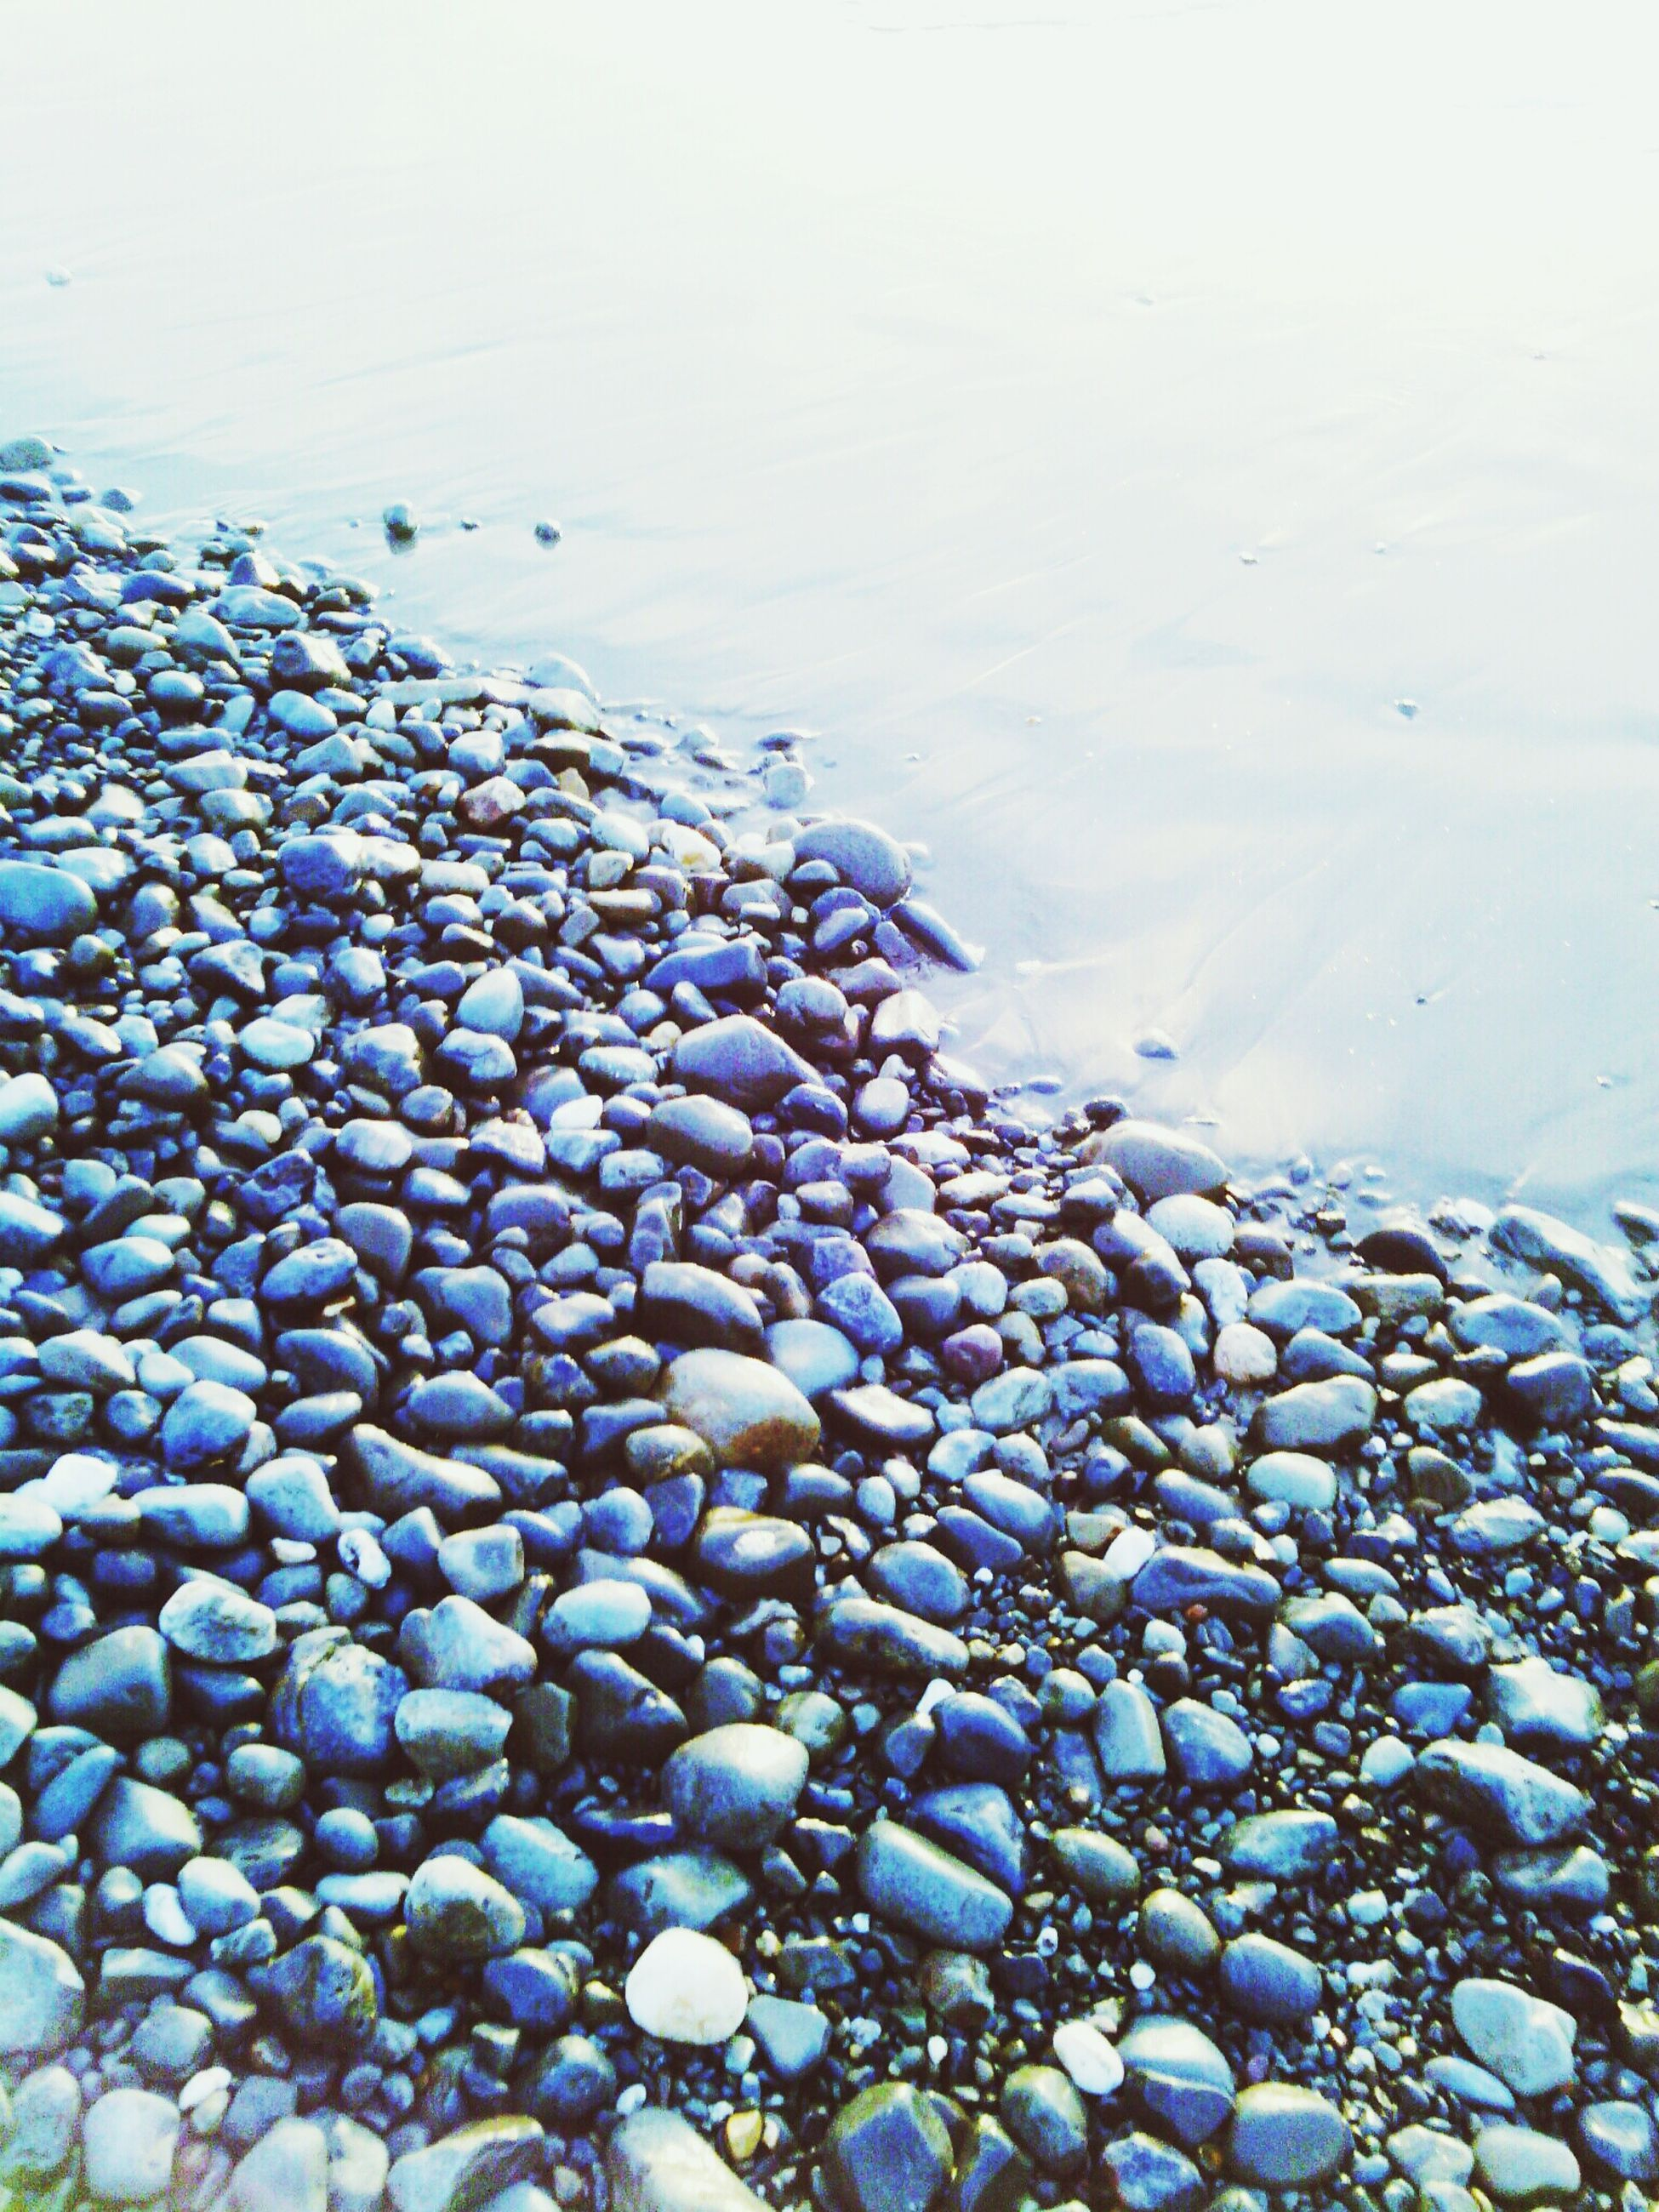 water, beach, pebble, stone - object, abundance, shore, sea, high angle view, nature, large group of objects, seashell, animal themes, tranquility, sand, rock - object, day, no people, stone, outdoors